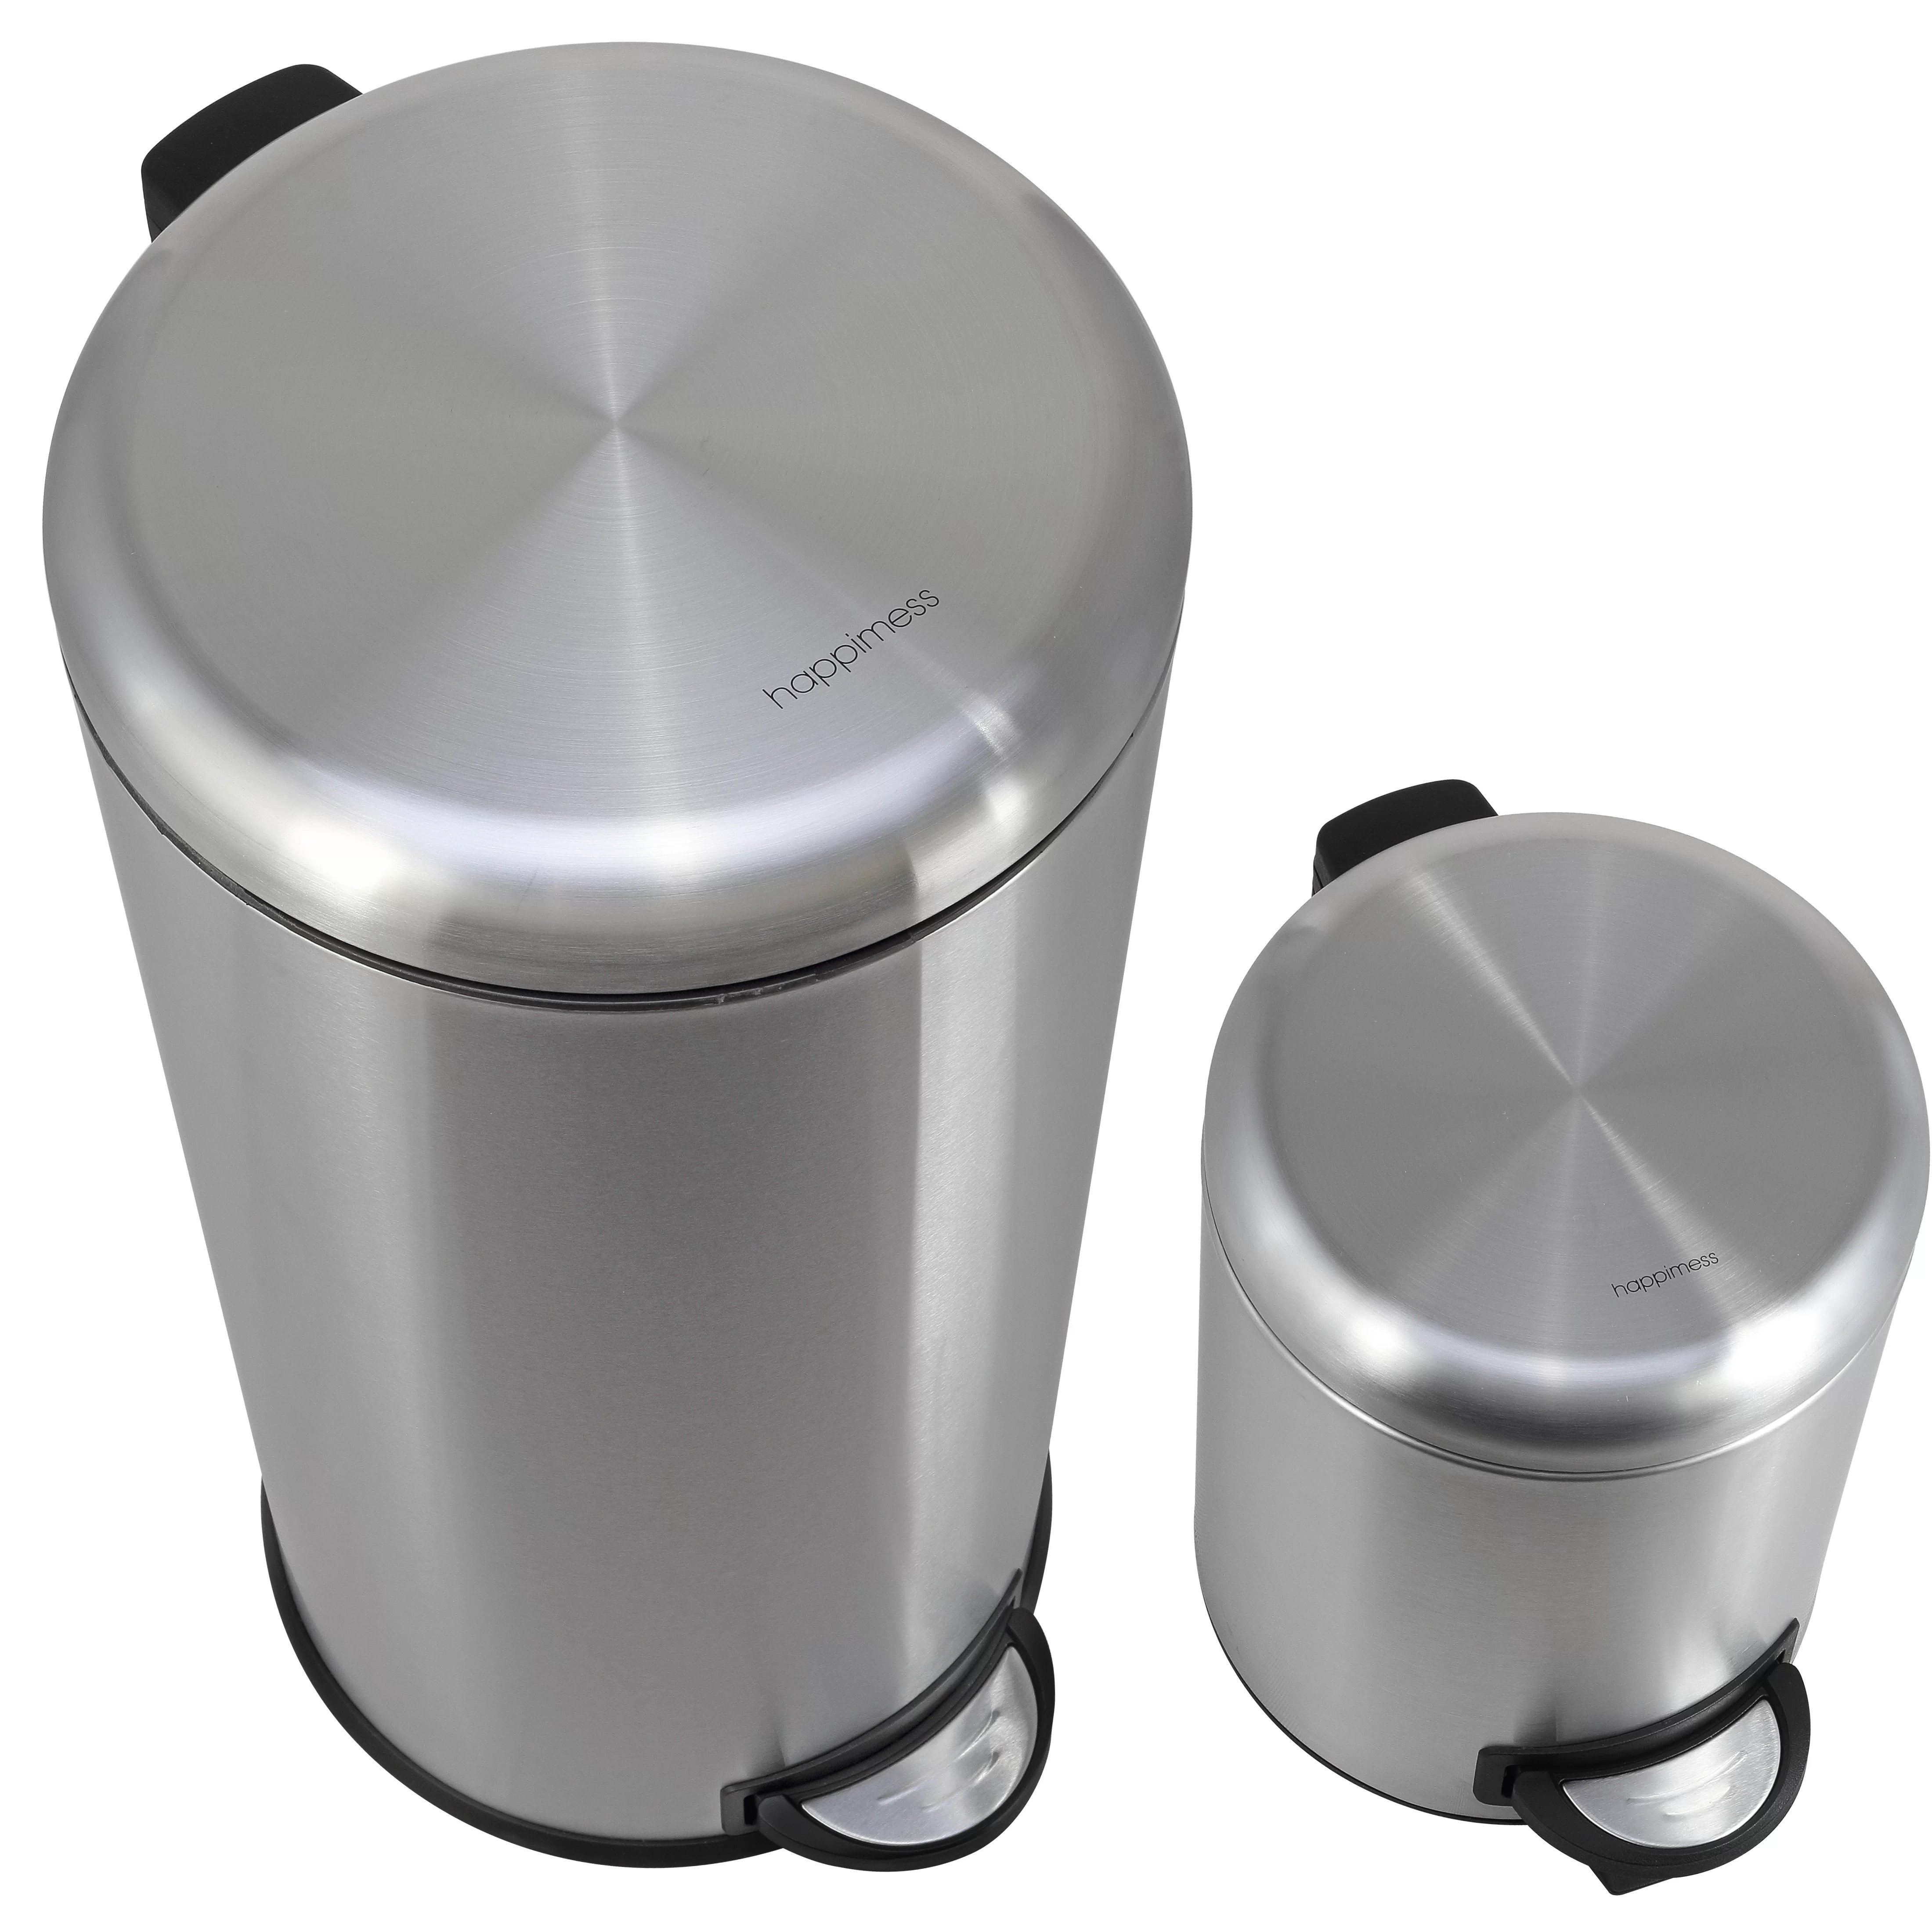 Small White Trash Can With Lid Oscar Stainless Steel 8 Gallon Step On Trash Can